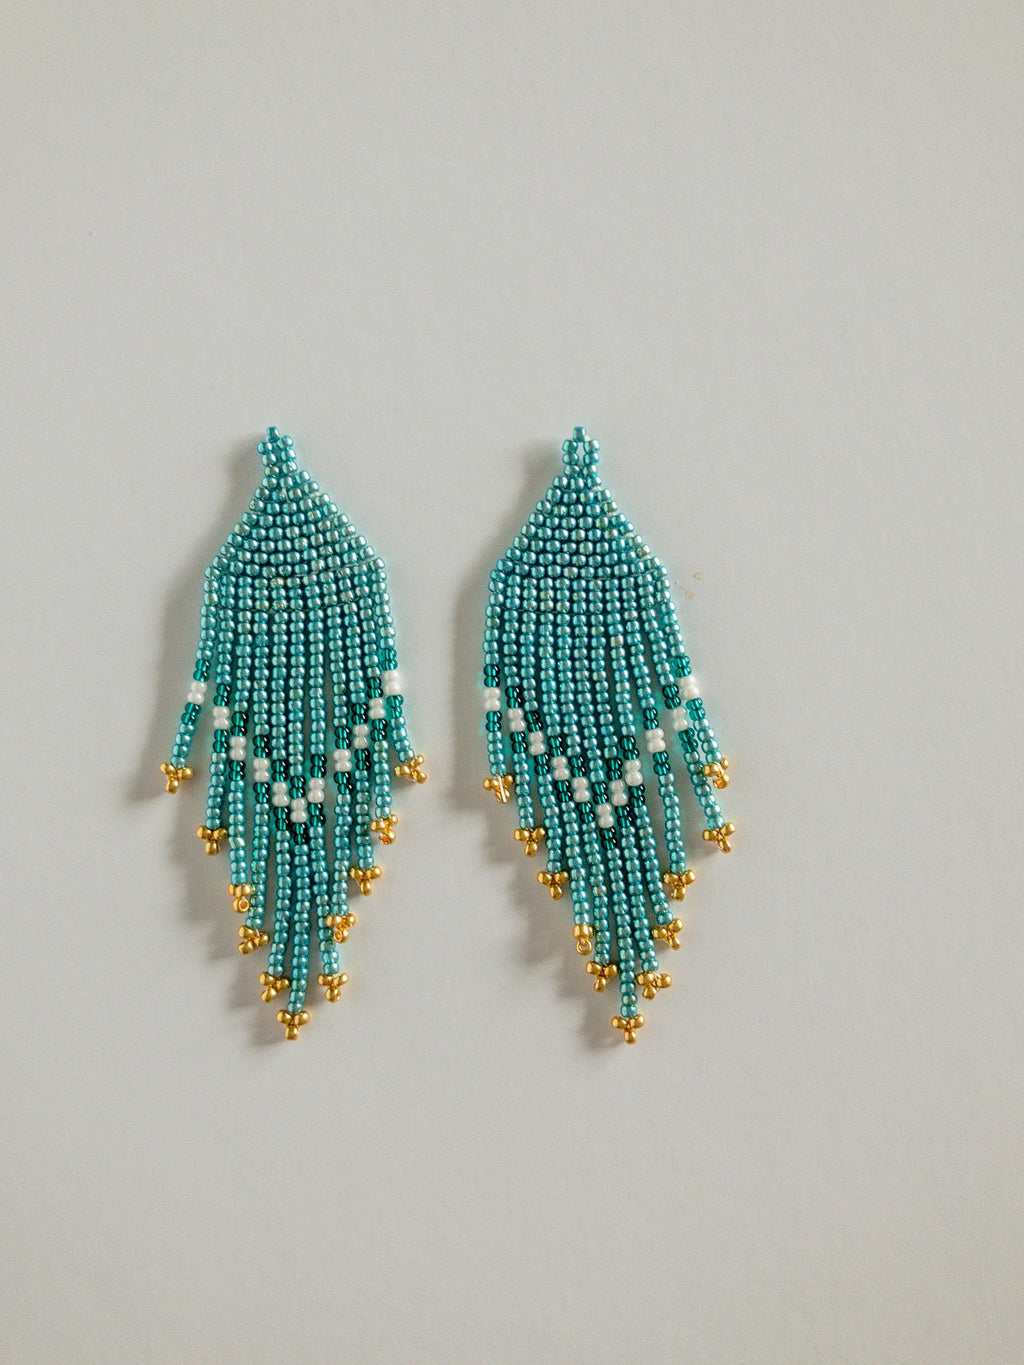 Seed bead earrings with blue, gold and white beads